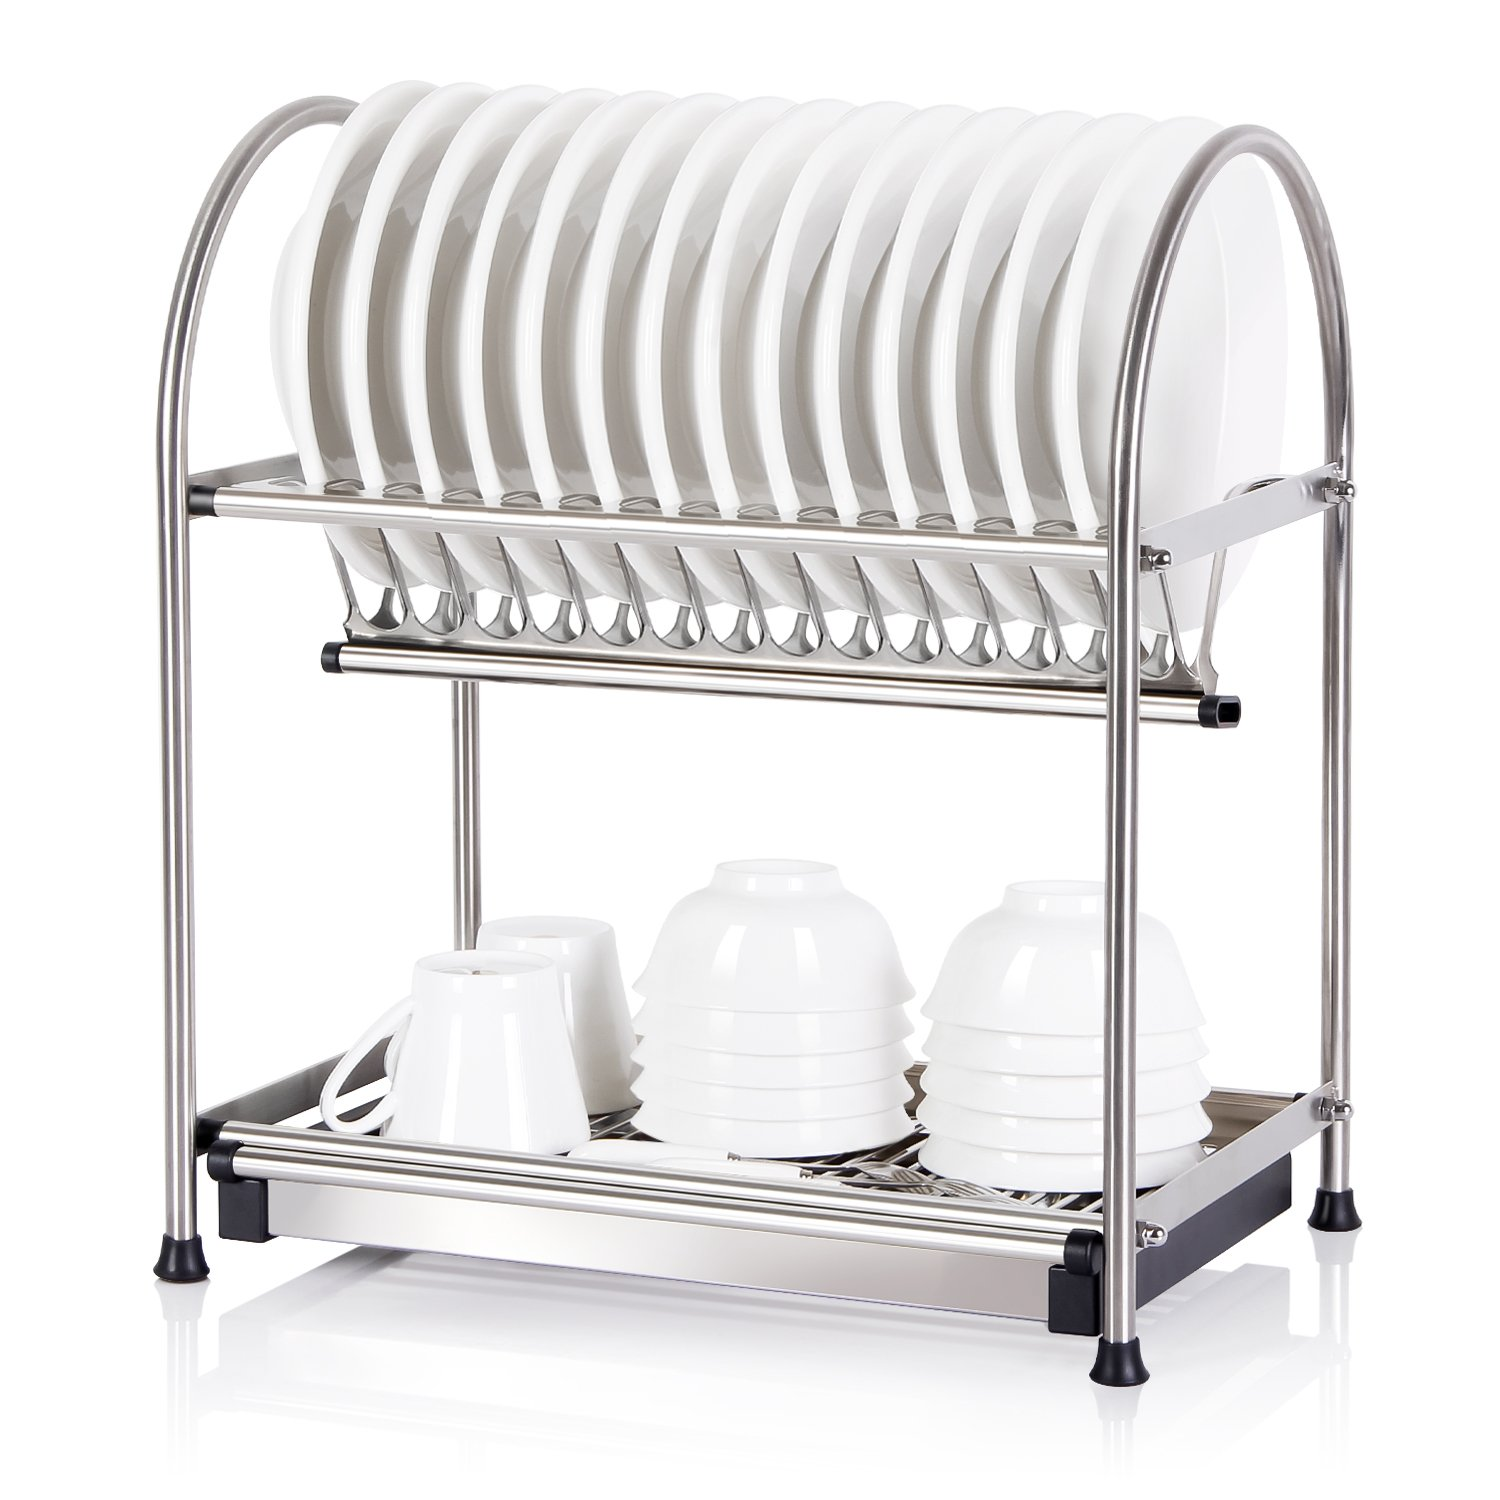 kitchen accessories cutlery multifunctional dish plates tier item storage shelf dishes from holders draining metal rack in racks